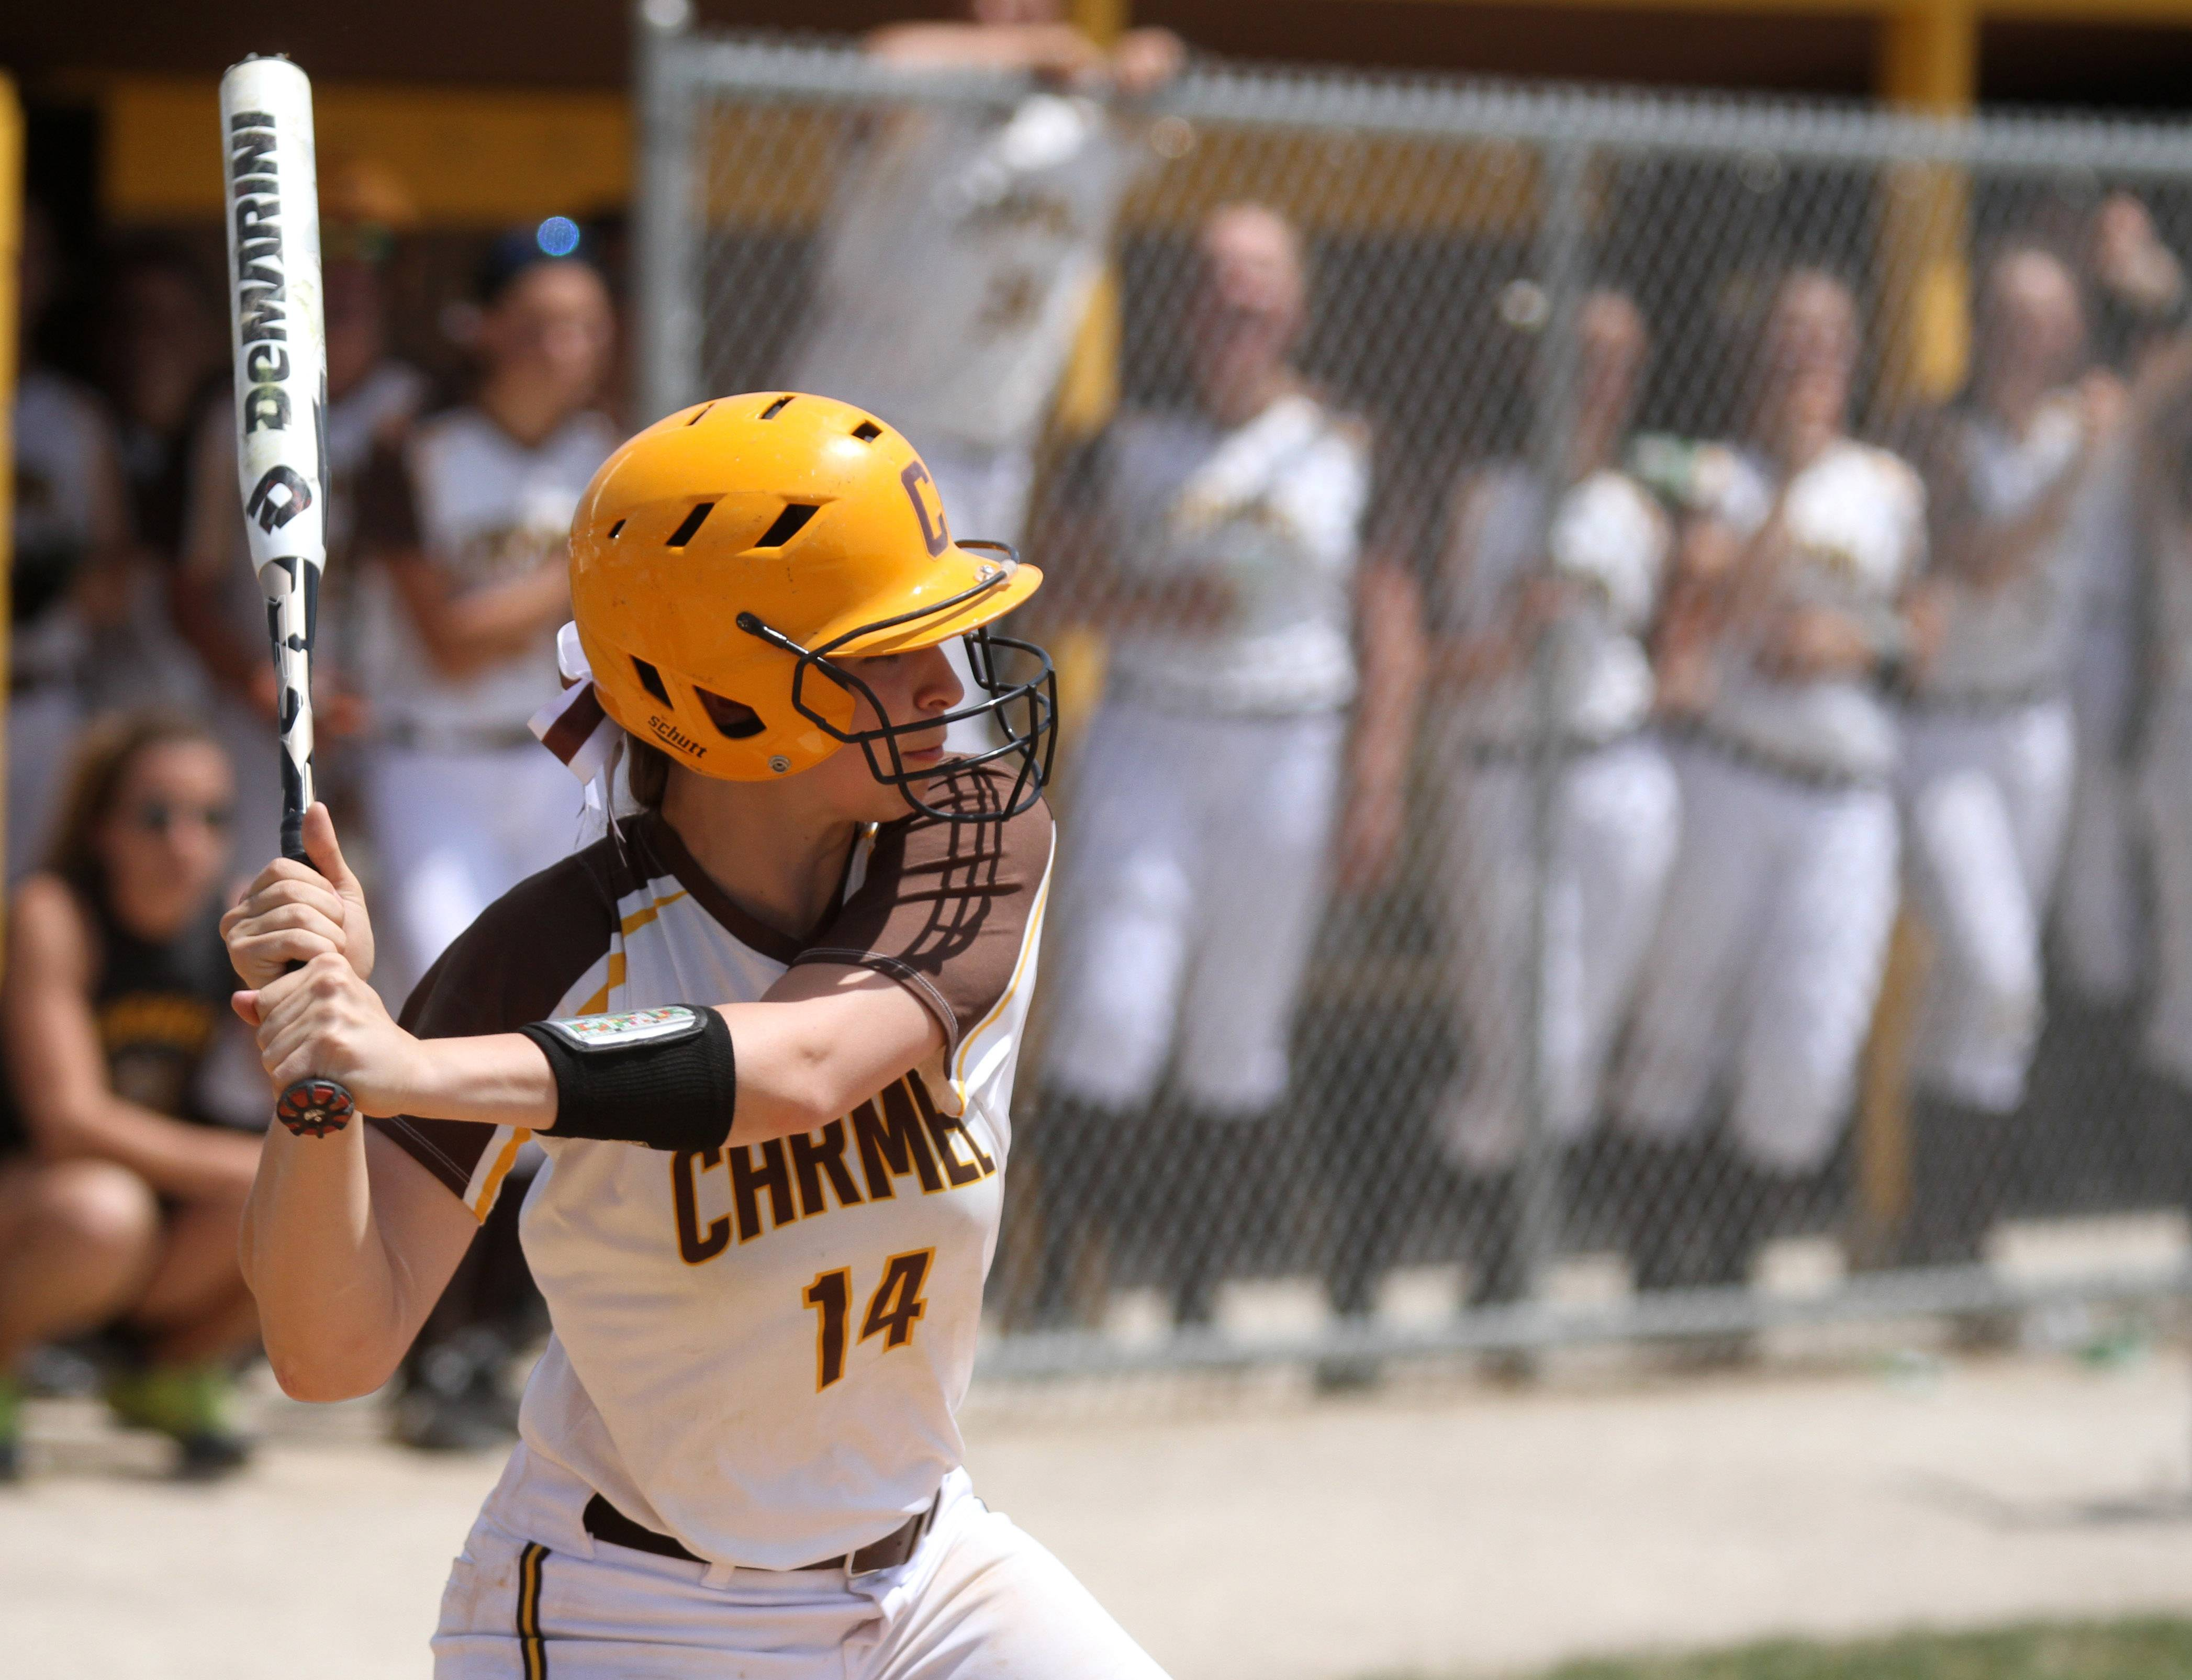 Carmel's Jenny Behan prepares to take a rip during Class 4A regional play against Libertyville.